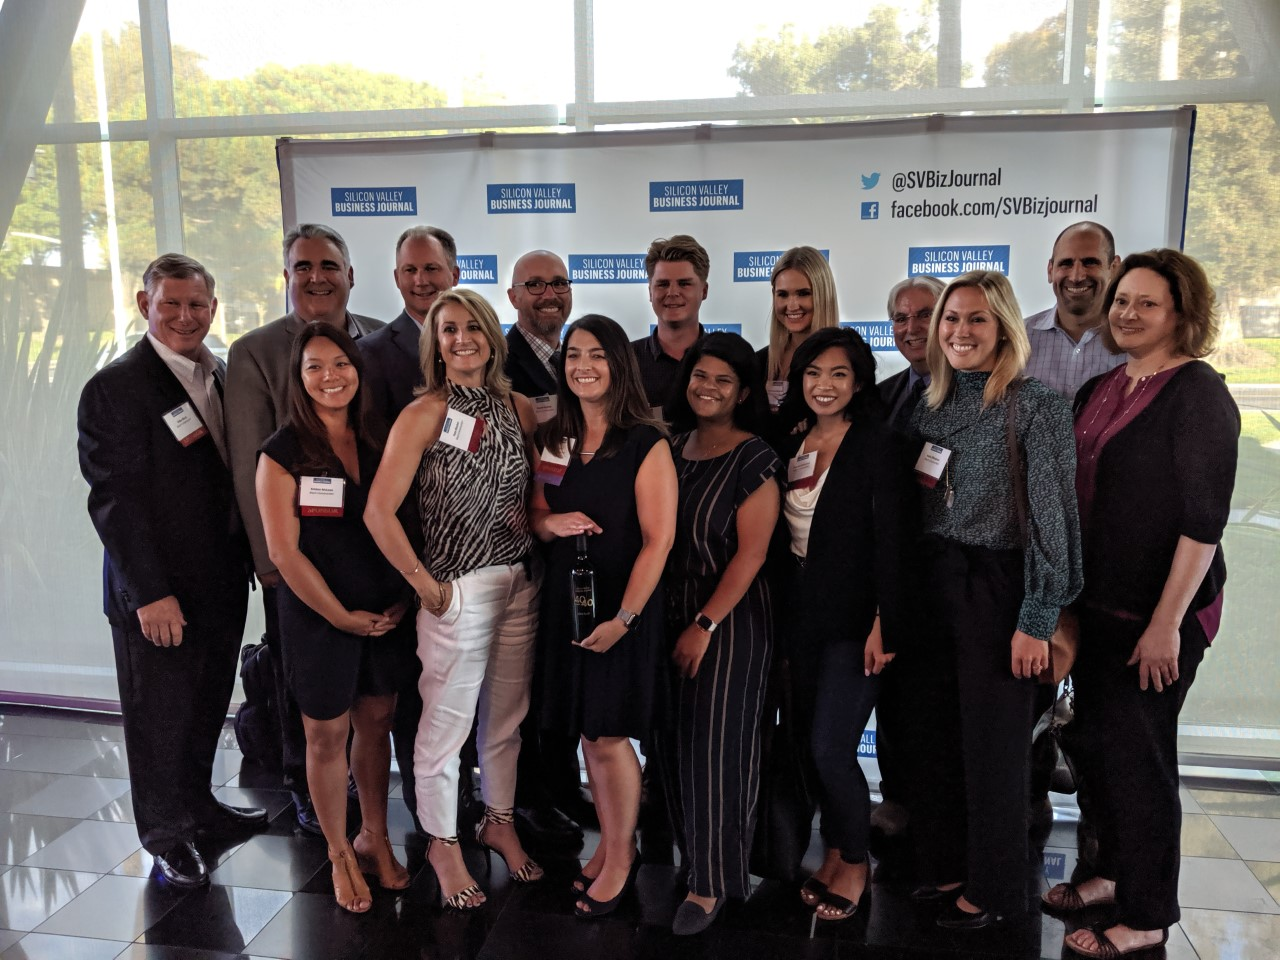 A group shot of Blach Construction employees celebrating Kim at the event.